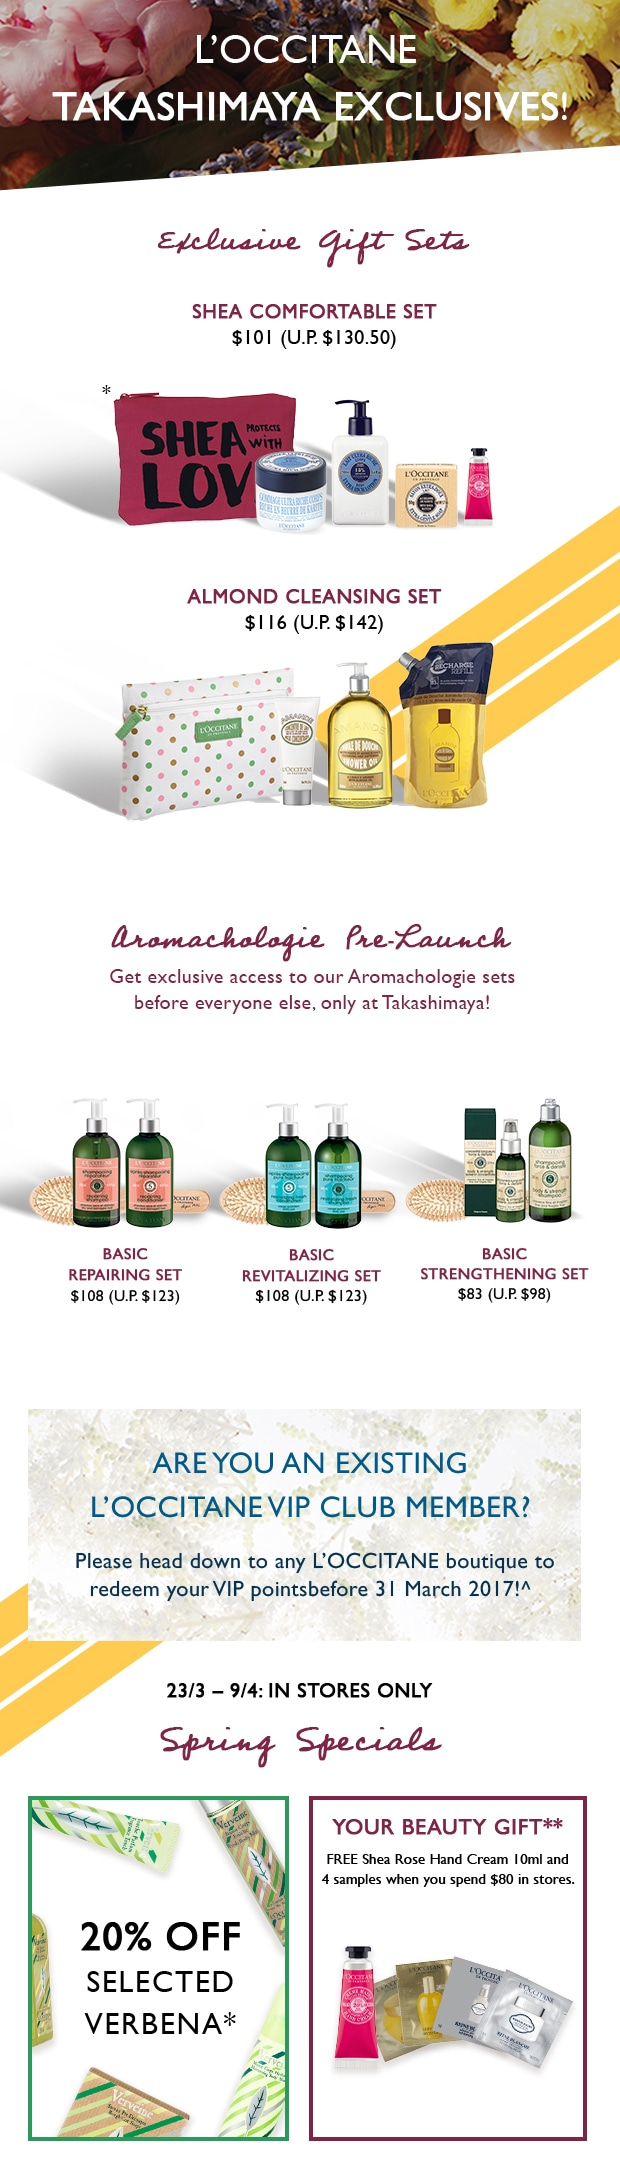 Takashimaya Exclusive Gift Sets and Pre-Launch